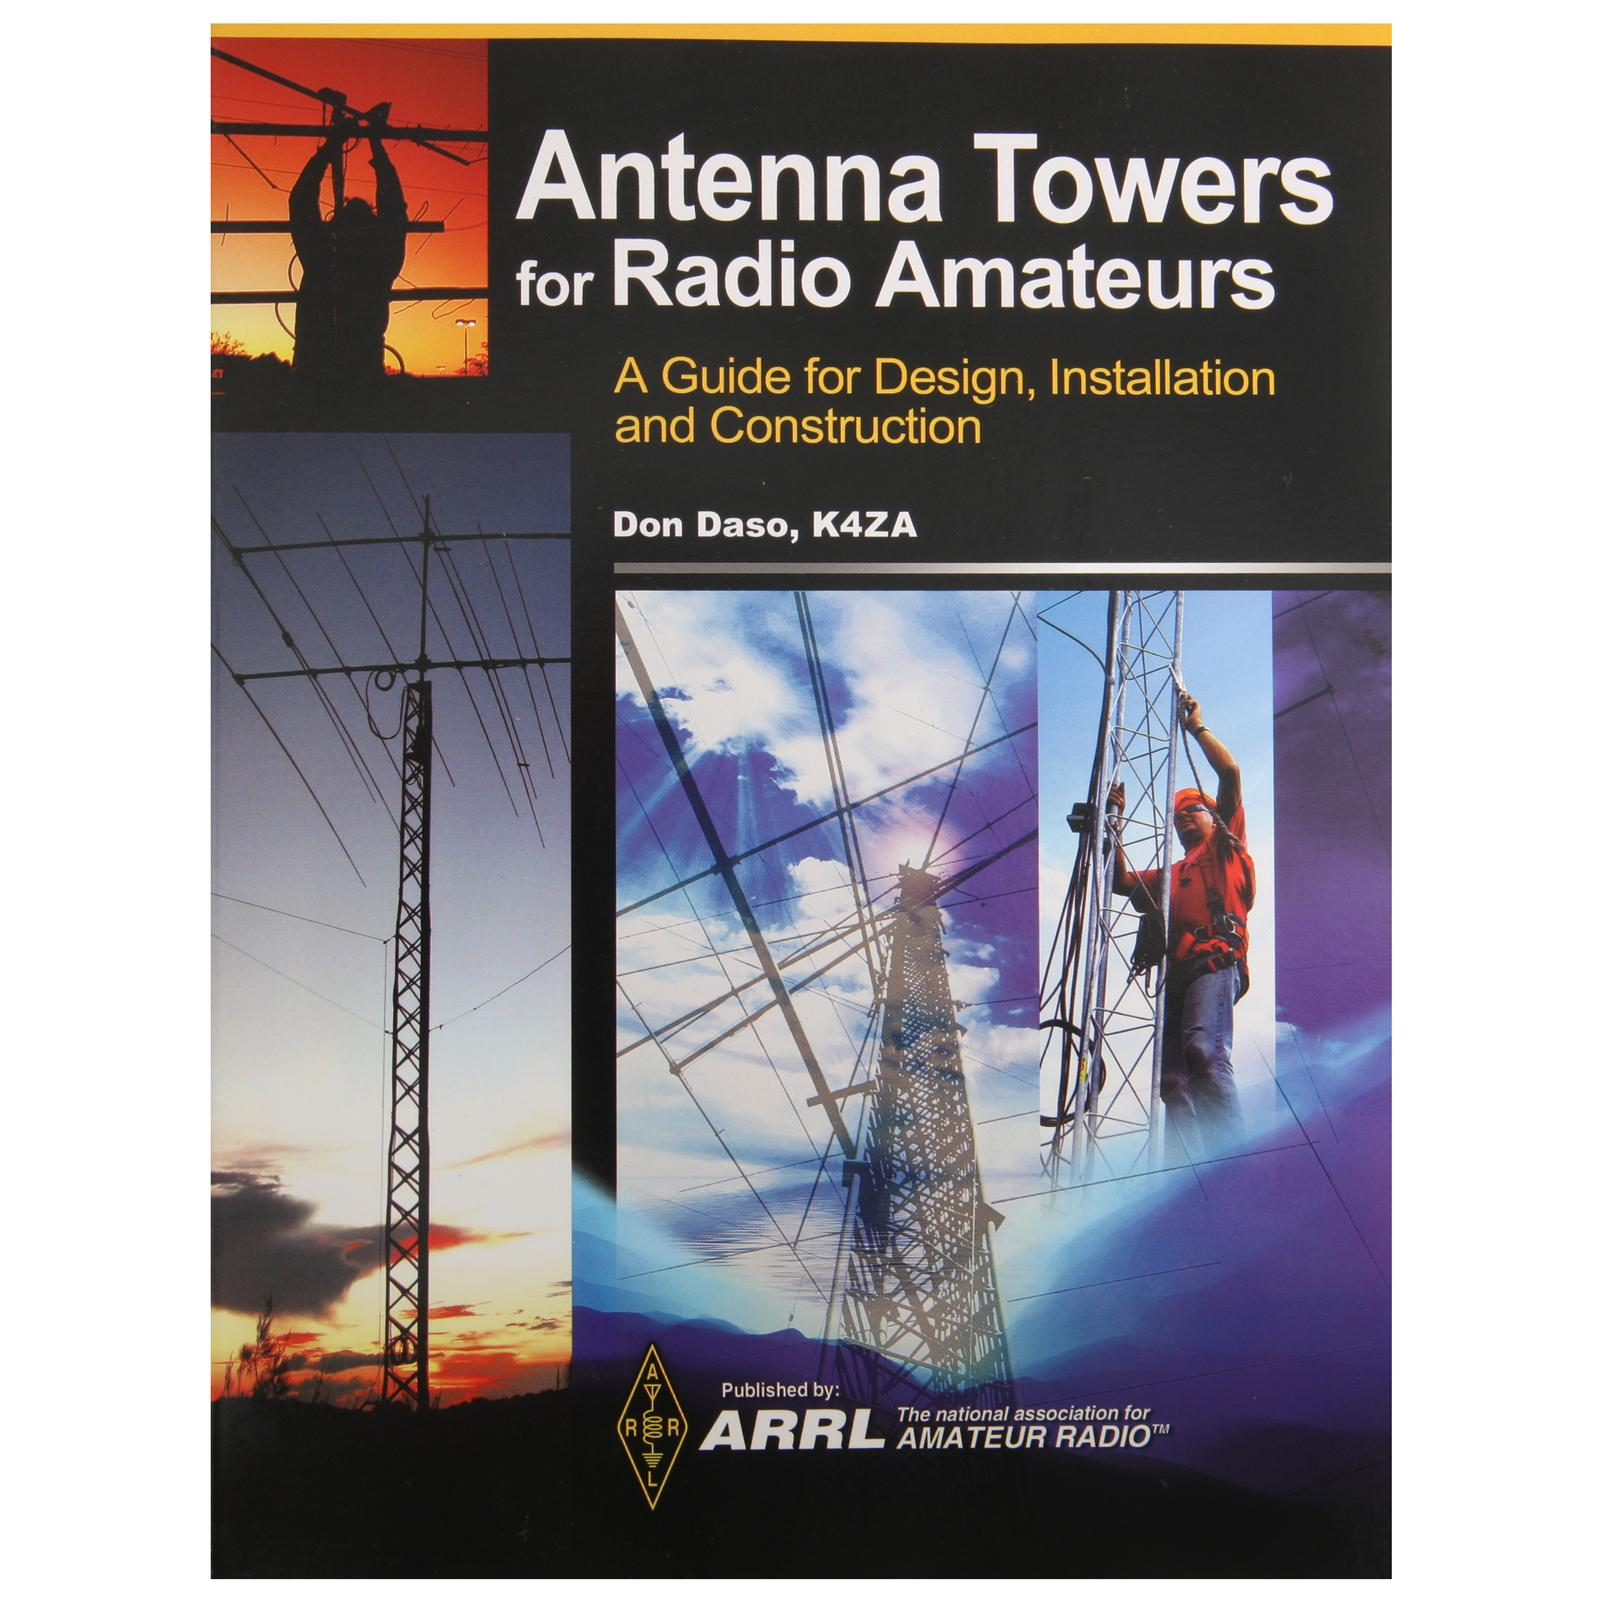 ARRL - Antenna Towers for Radio Amateurs 0946